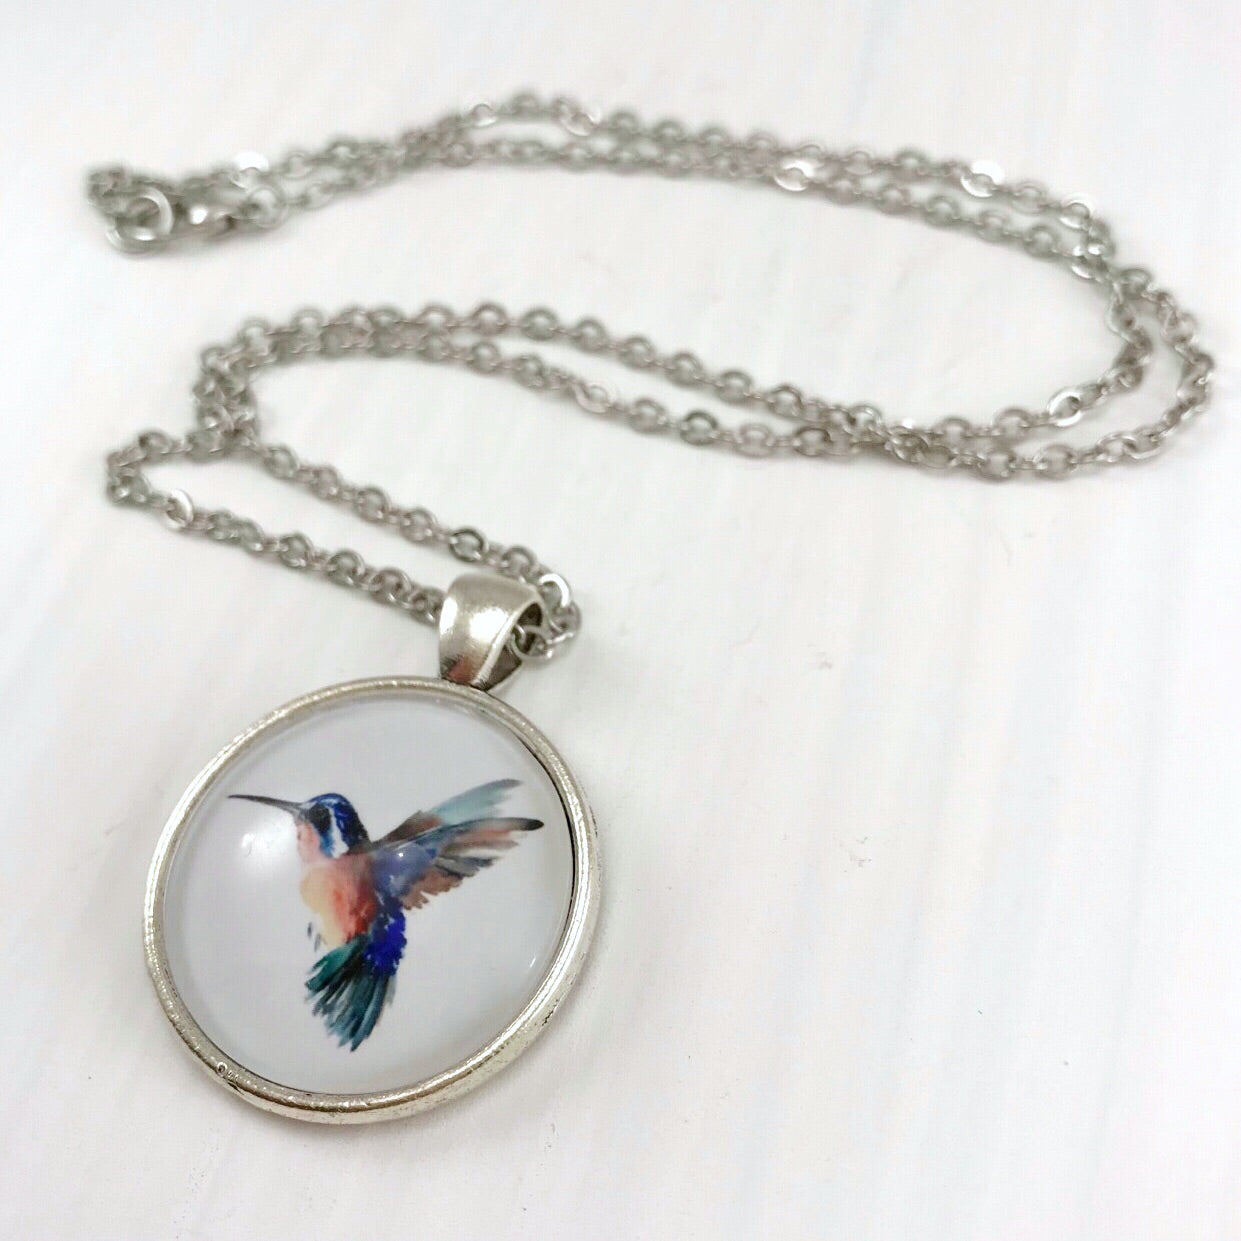 Hummingbird Necklace - Antique Silver